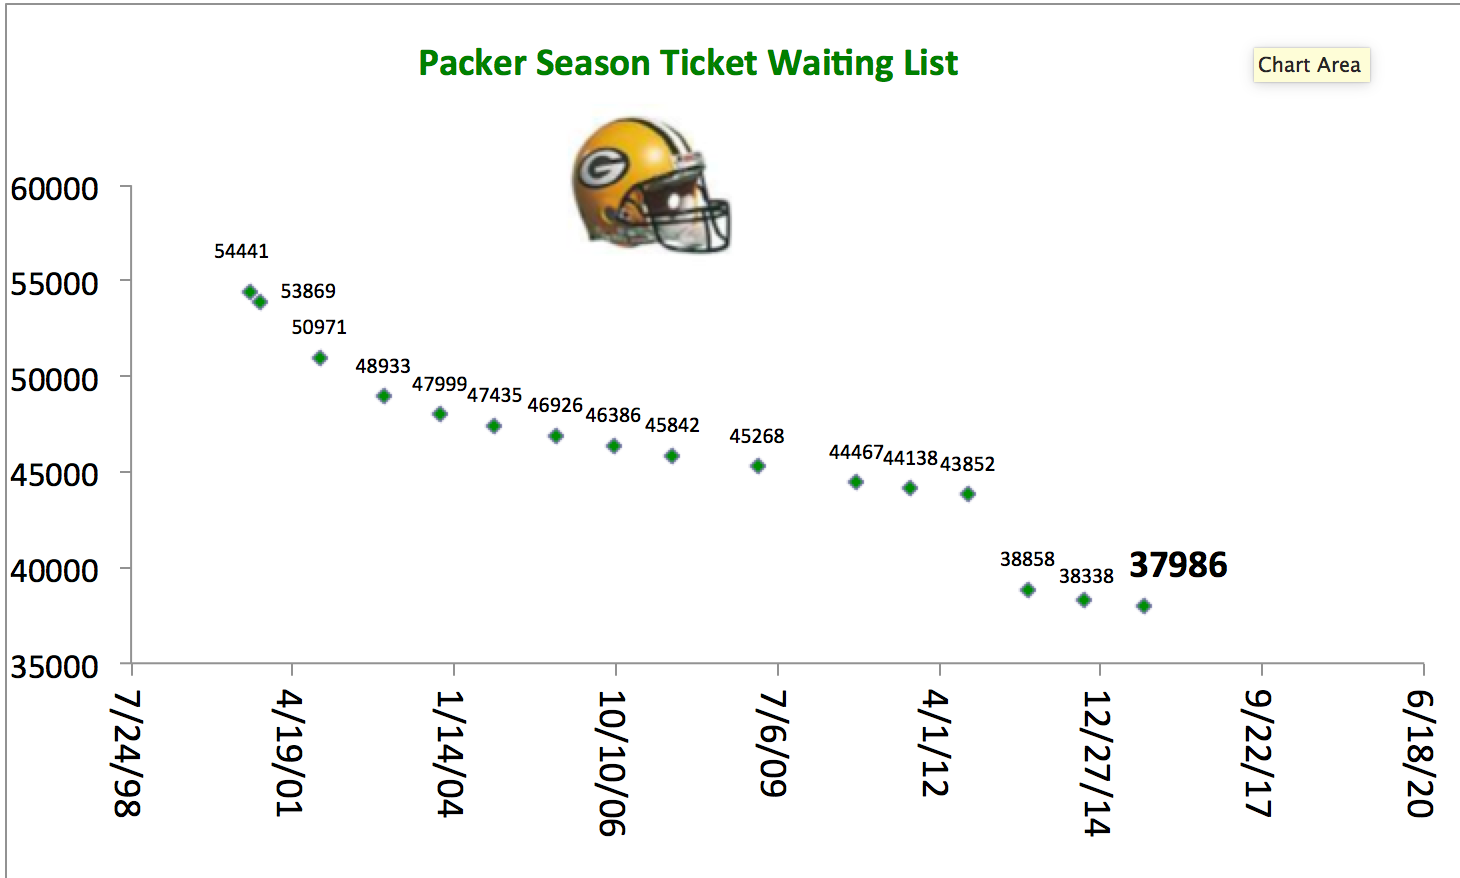 2015 Packer Season Ticket Graph